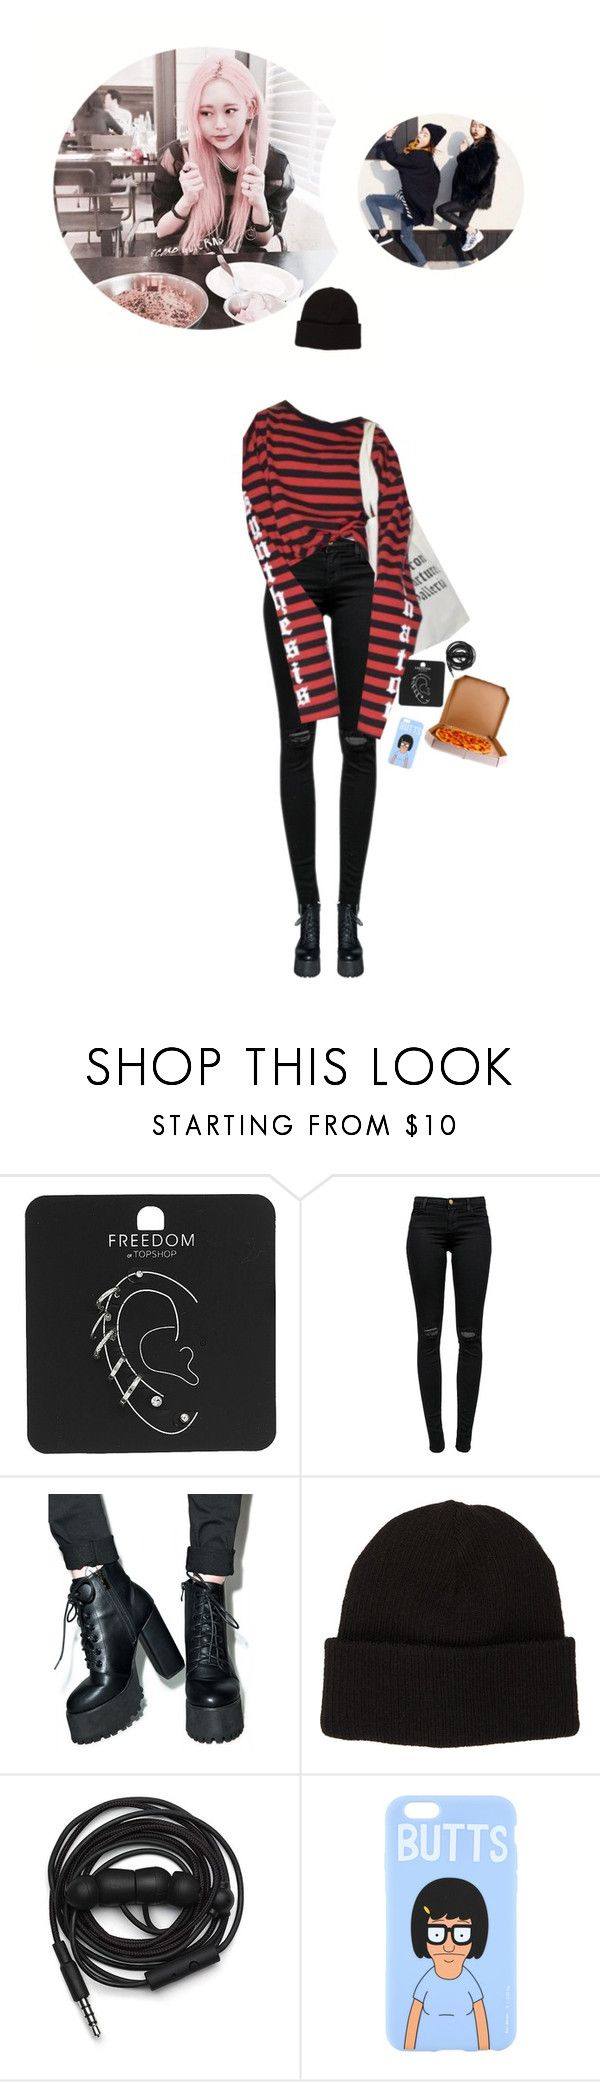 """""""Mingi: Pizza with Jia-unnie"""" by gg-hx ❤ liked on Polyvore featuring Topshop, J Brand, Current Mood, CA4LA and Urbanears"""